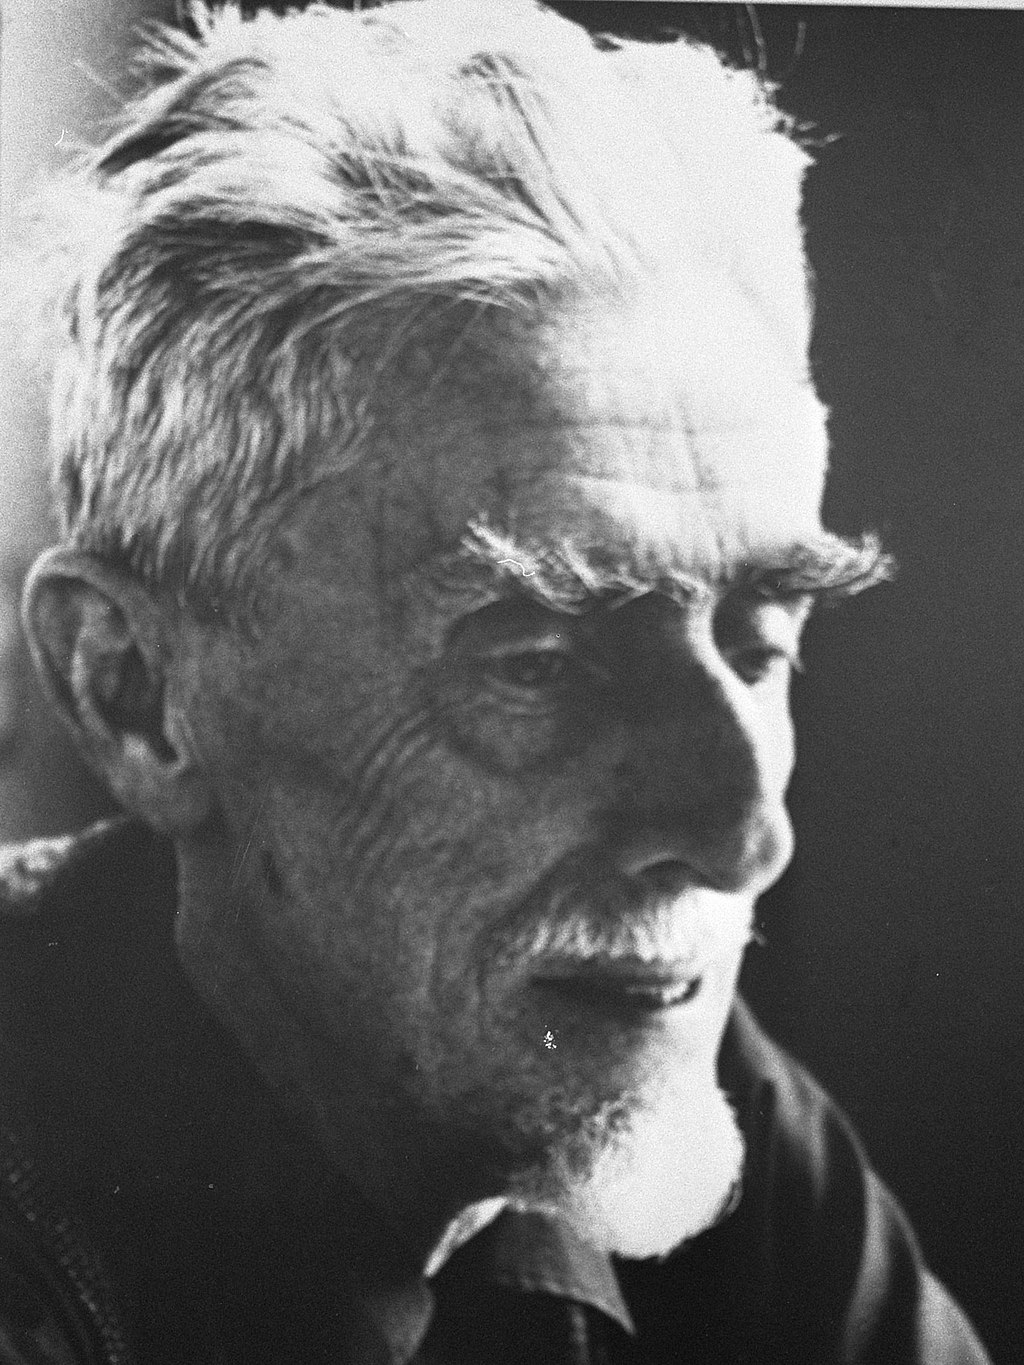 Black-and-white photograph of Escher in November 1971